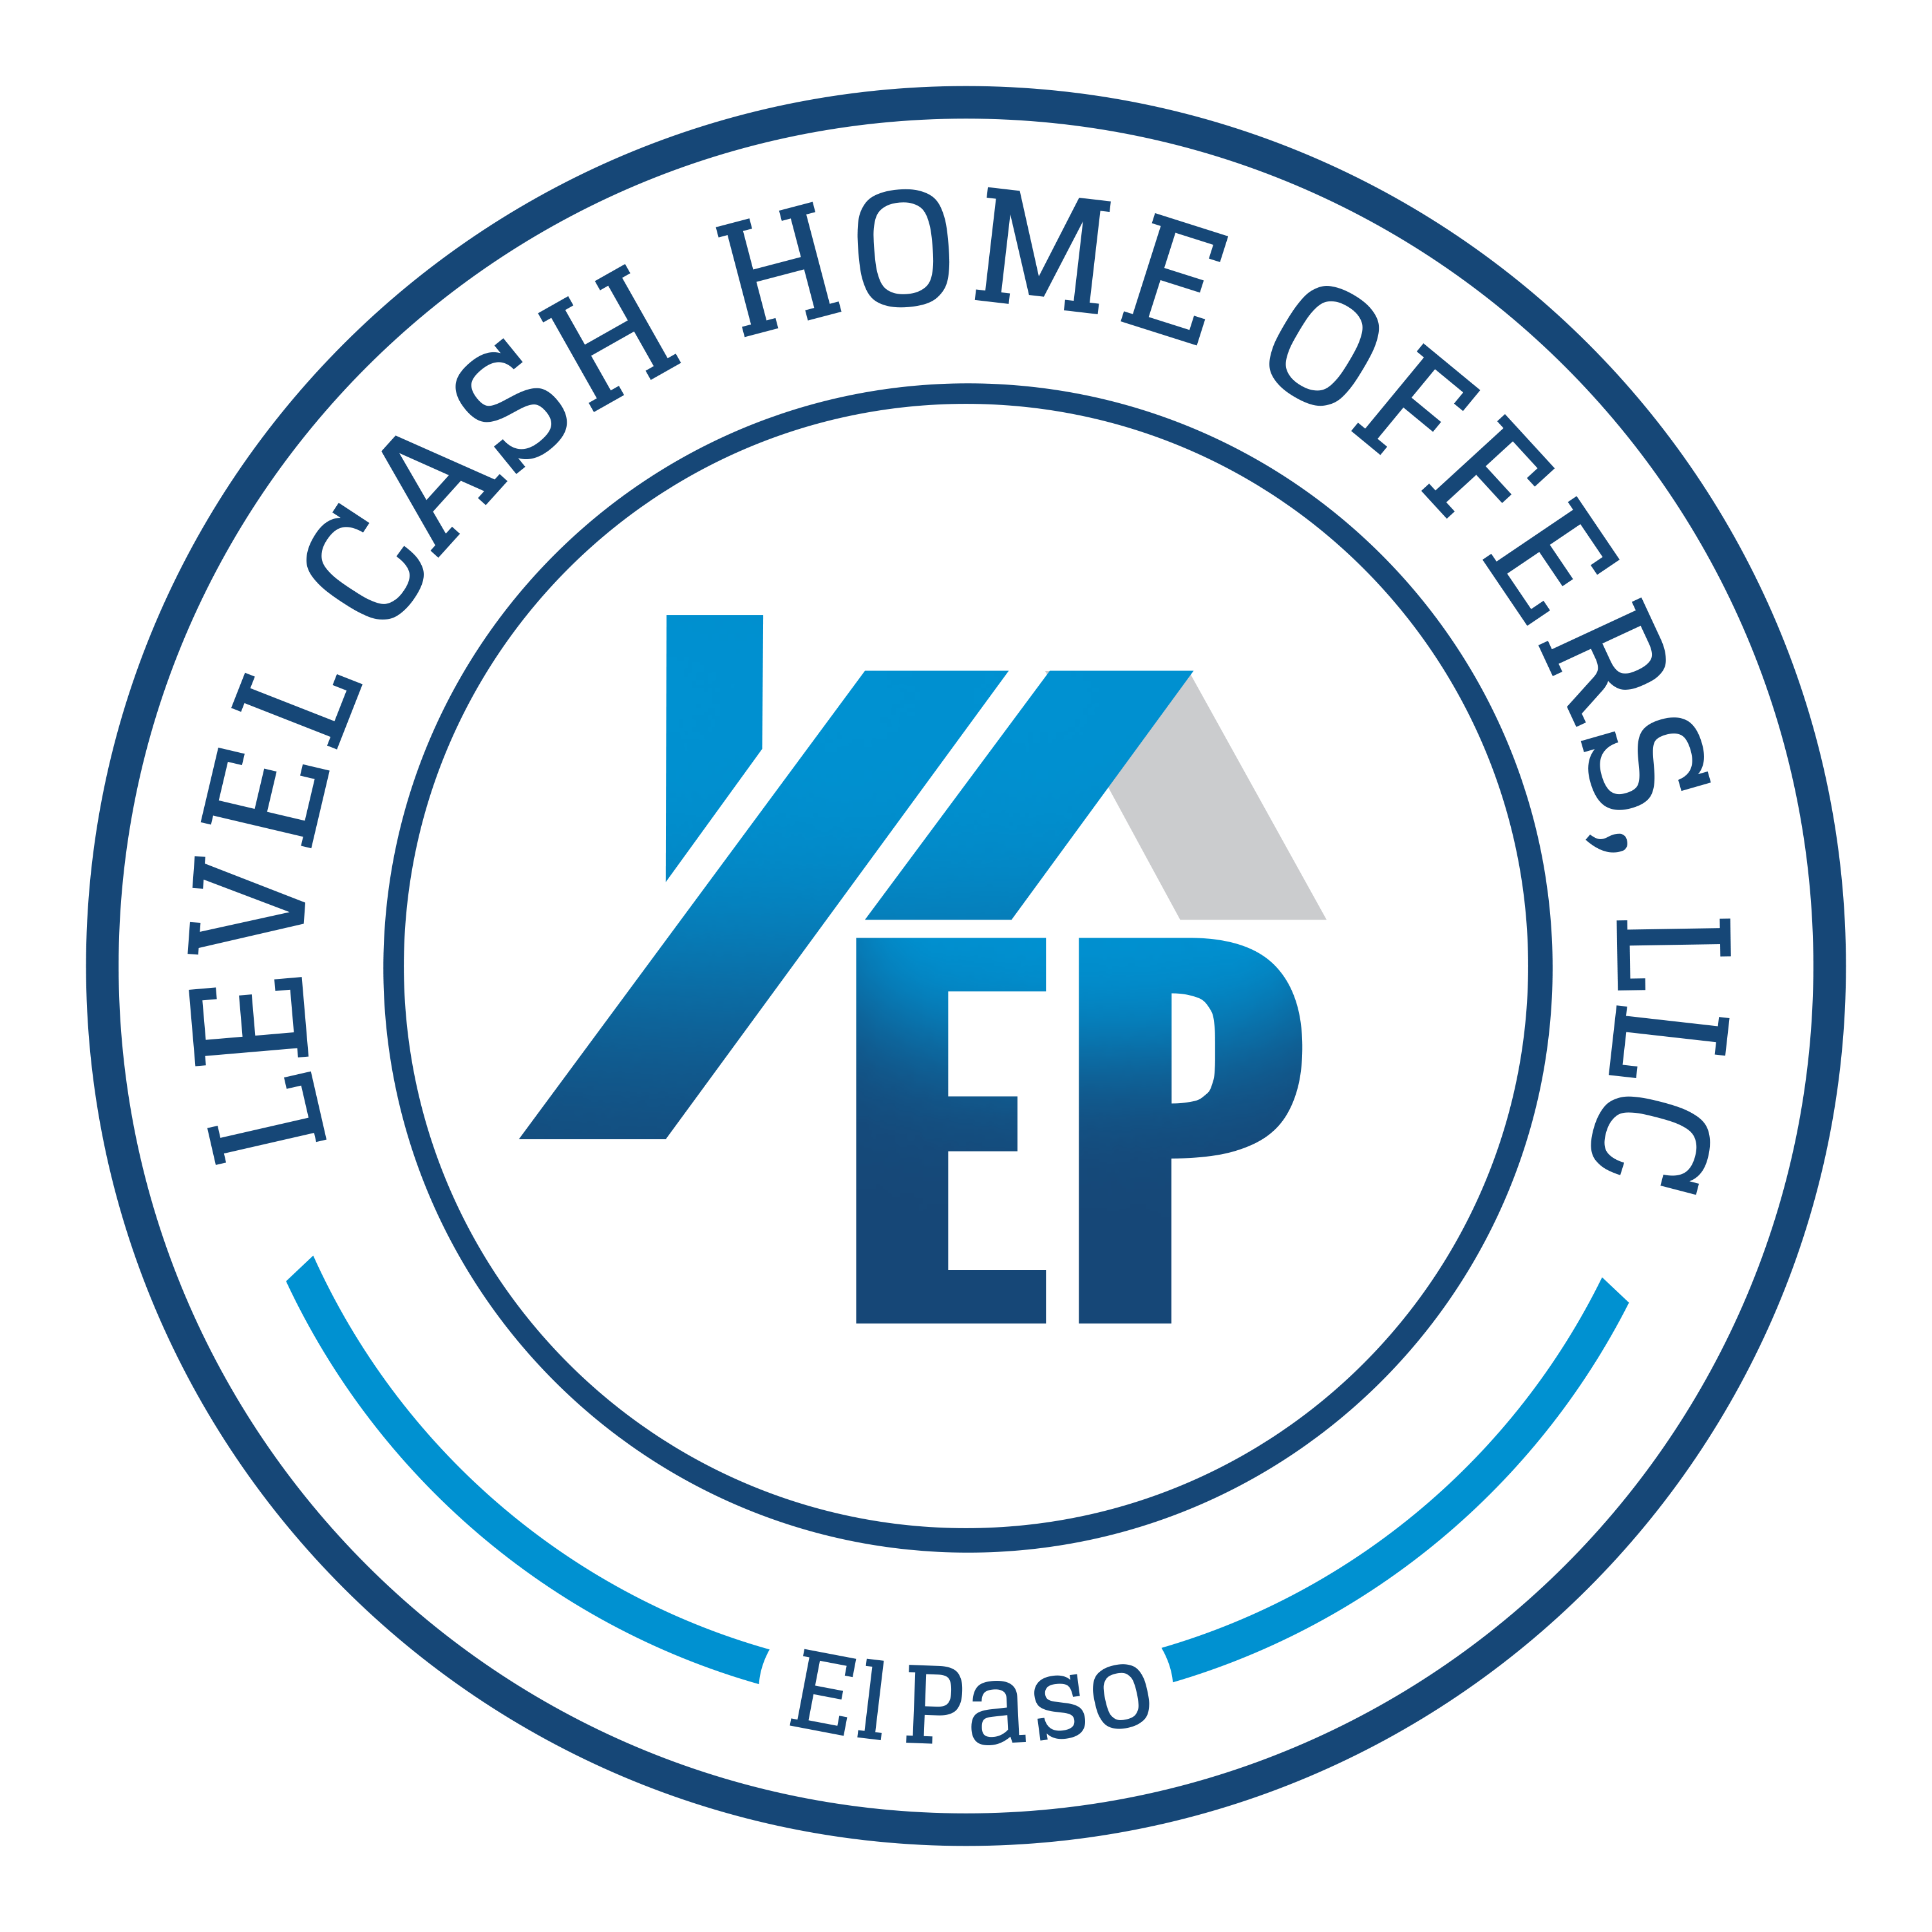 Level Cash Home Offers - We Buy Houses In El Paso